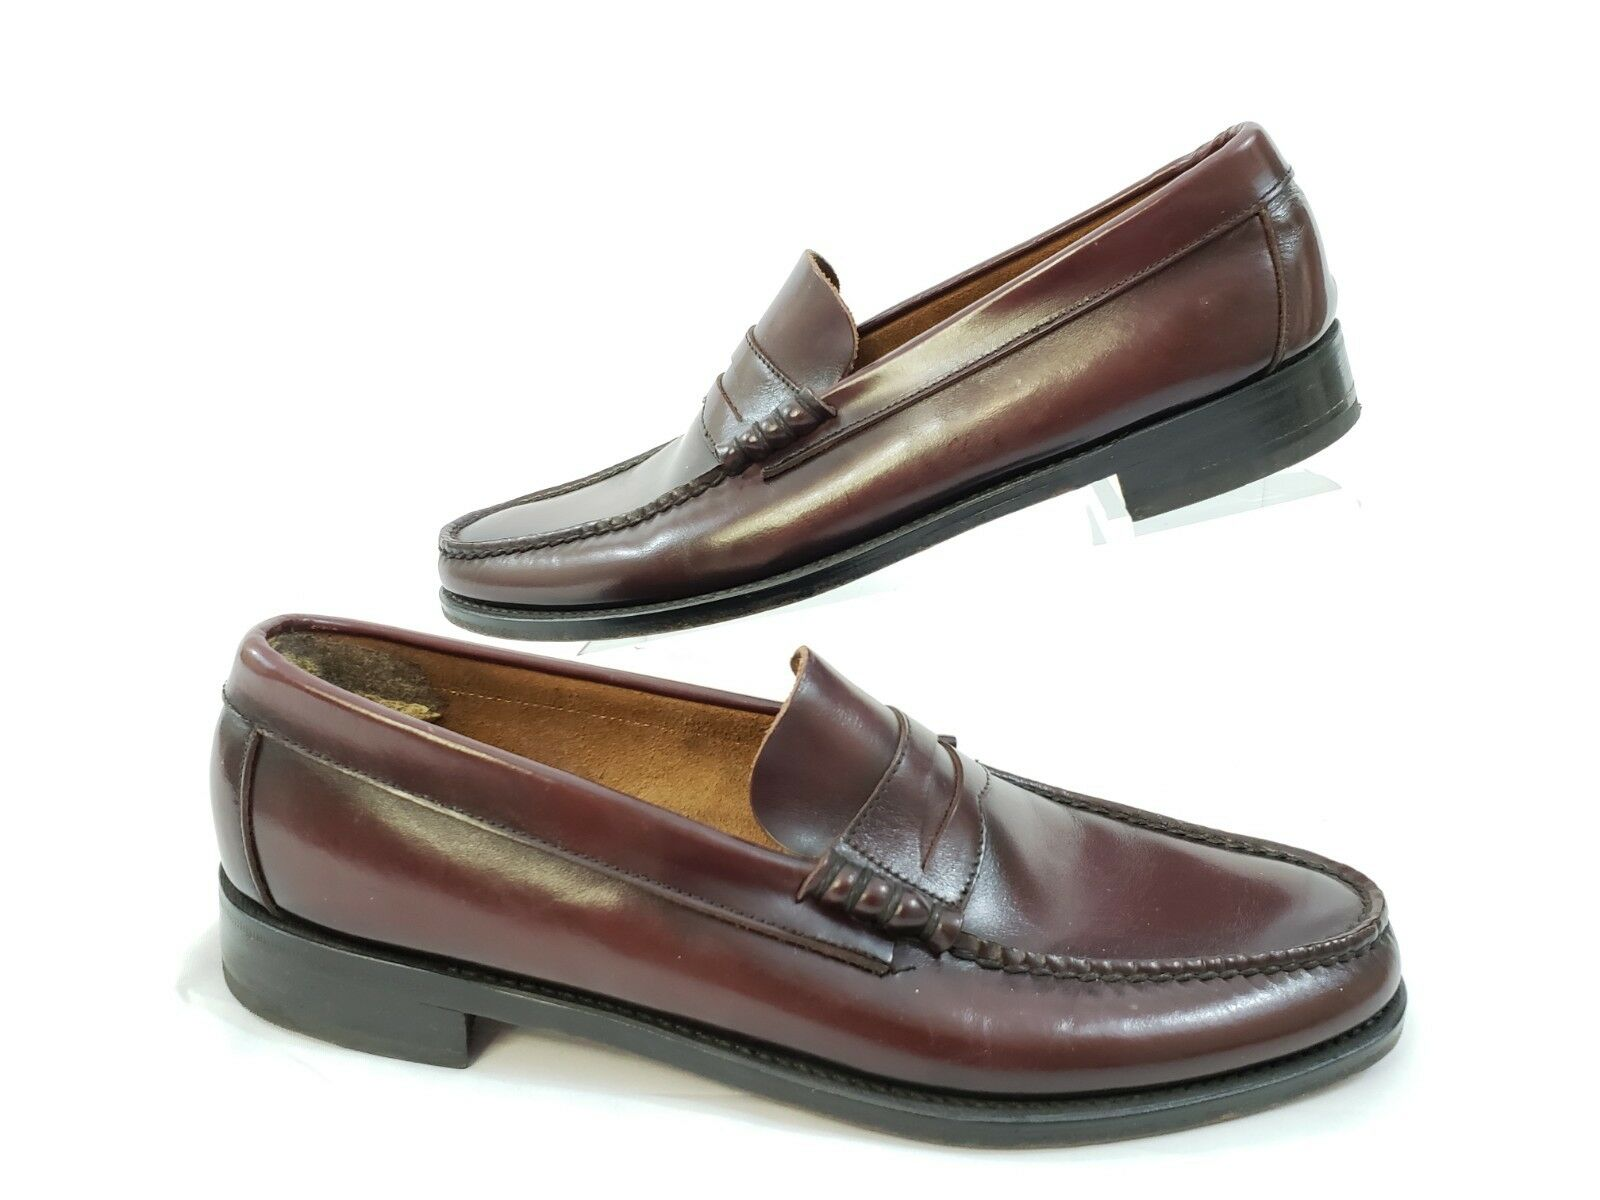 Florsheim Mens 10A Narrow Burgundy Brown Penny Loafers shoes Slip On 30068 EUC